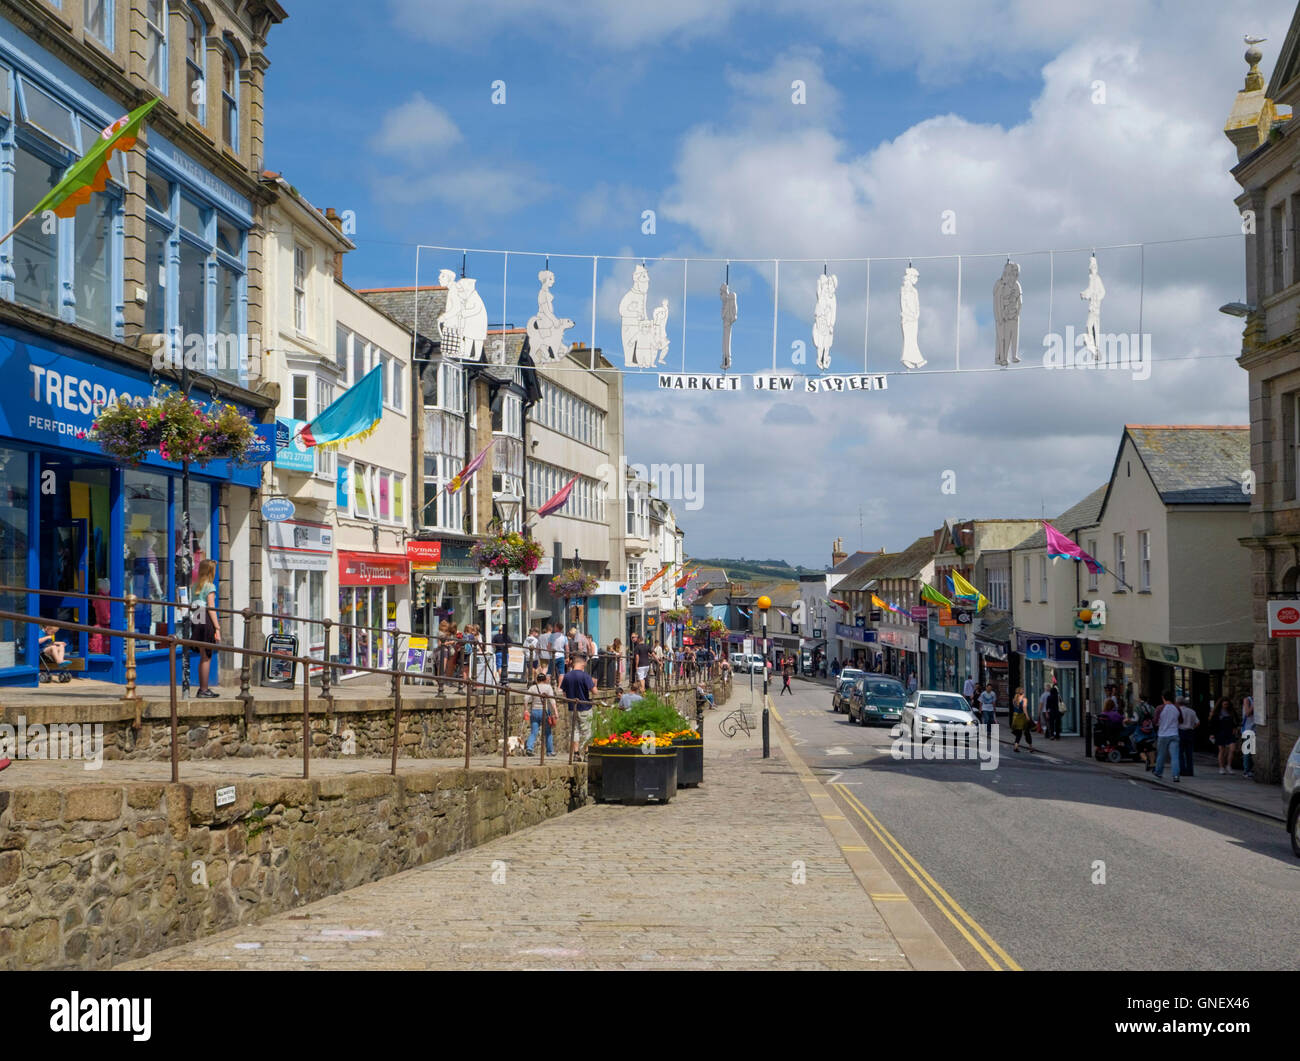 Penzance a town in West Cornwall England UK  Market Jew Street - Stock Image